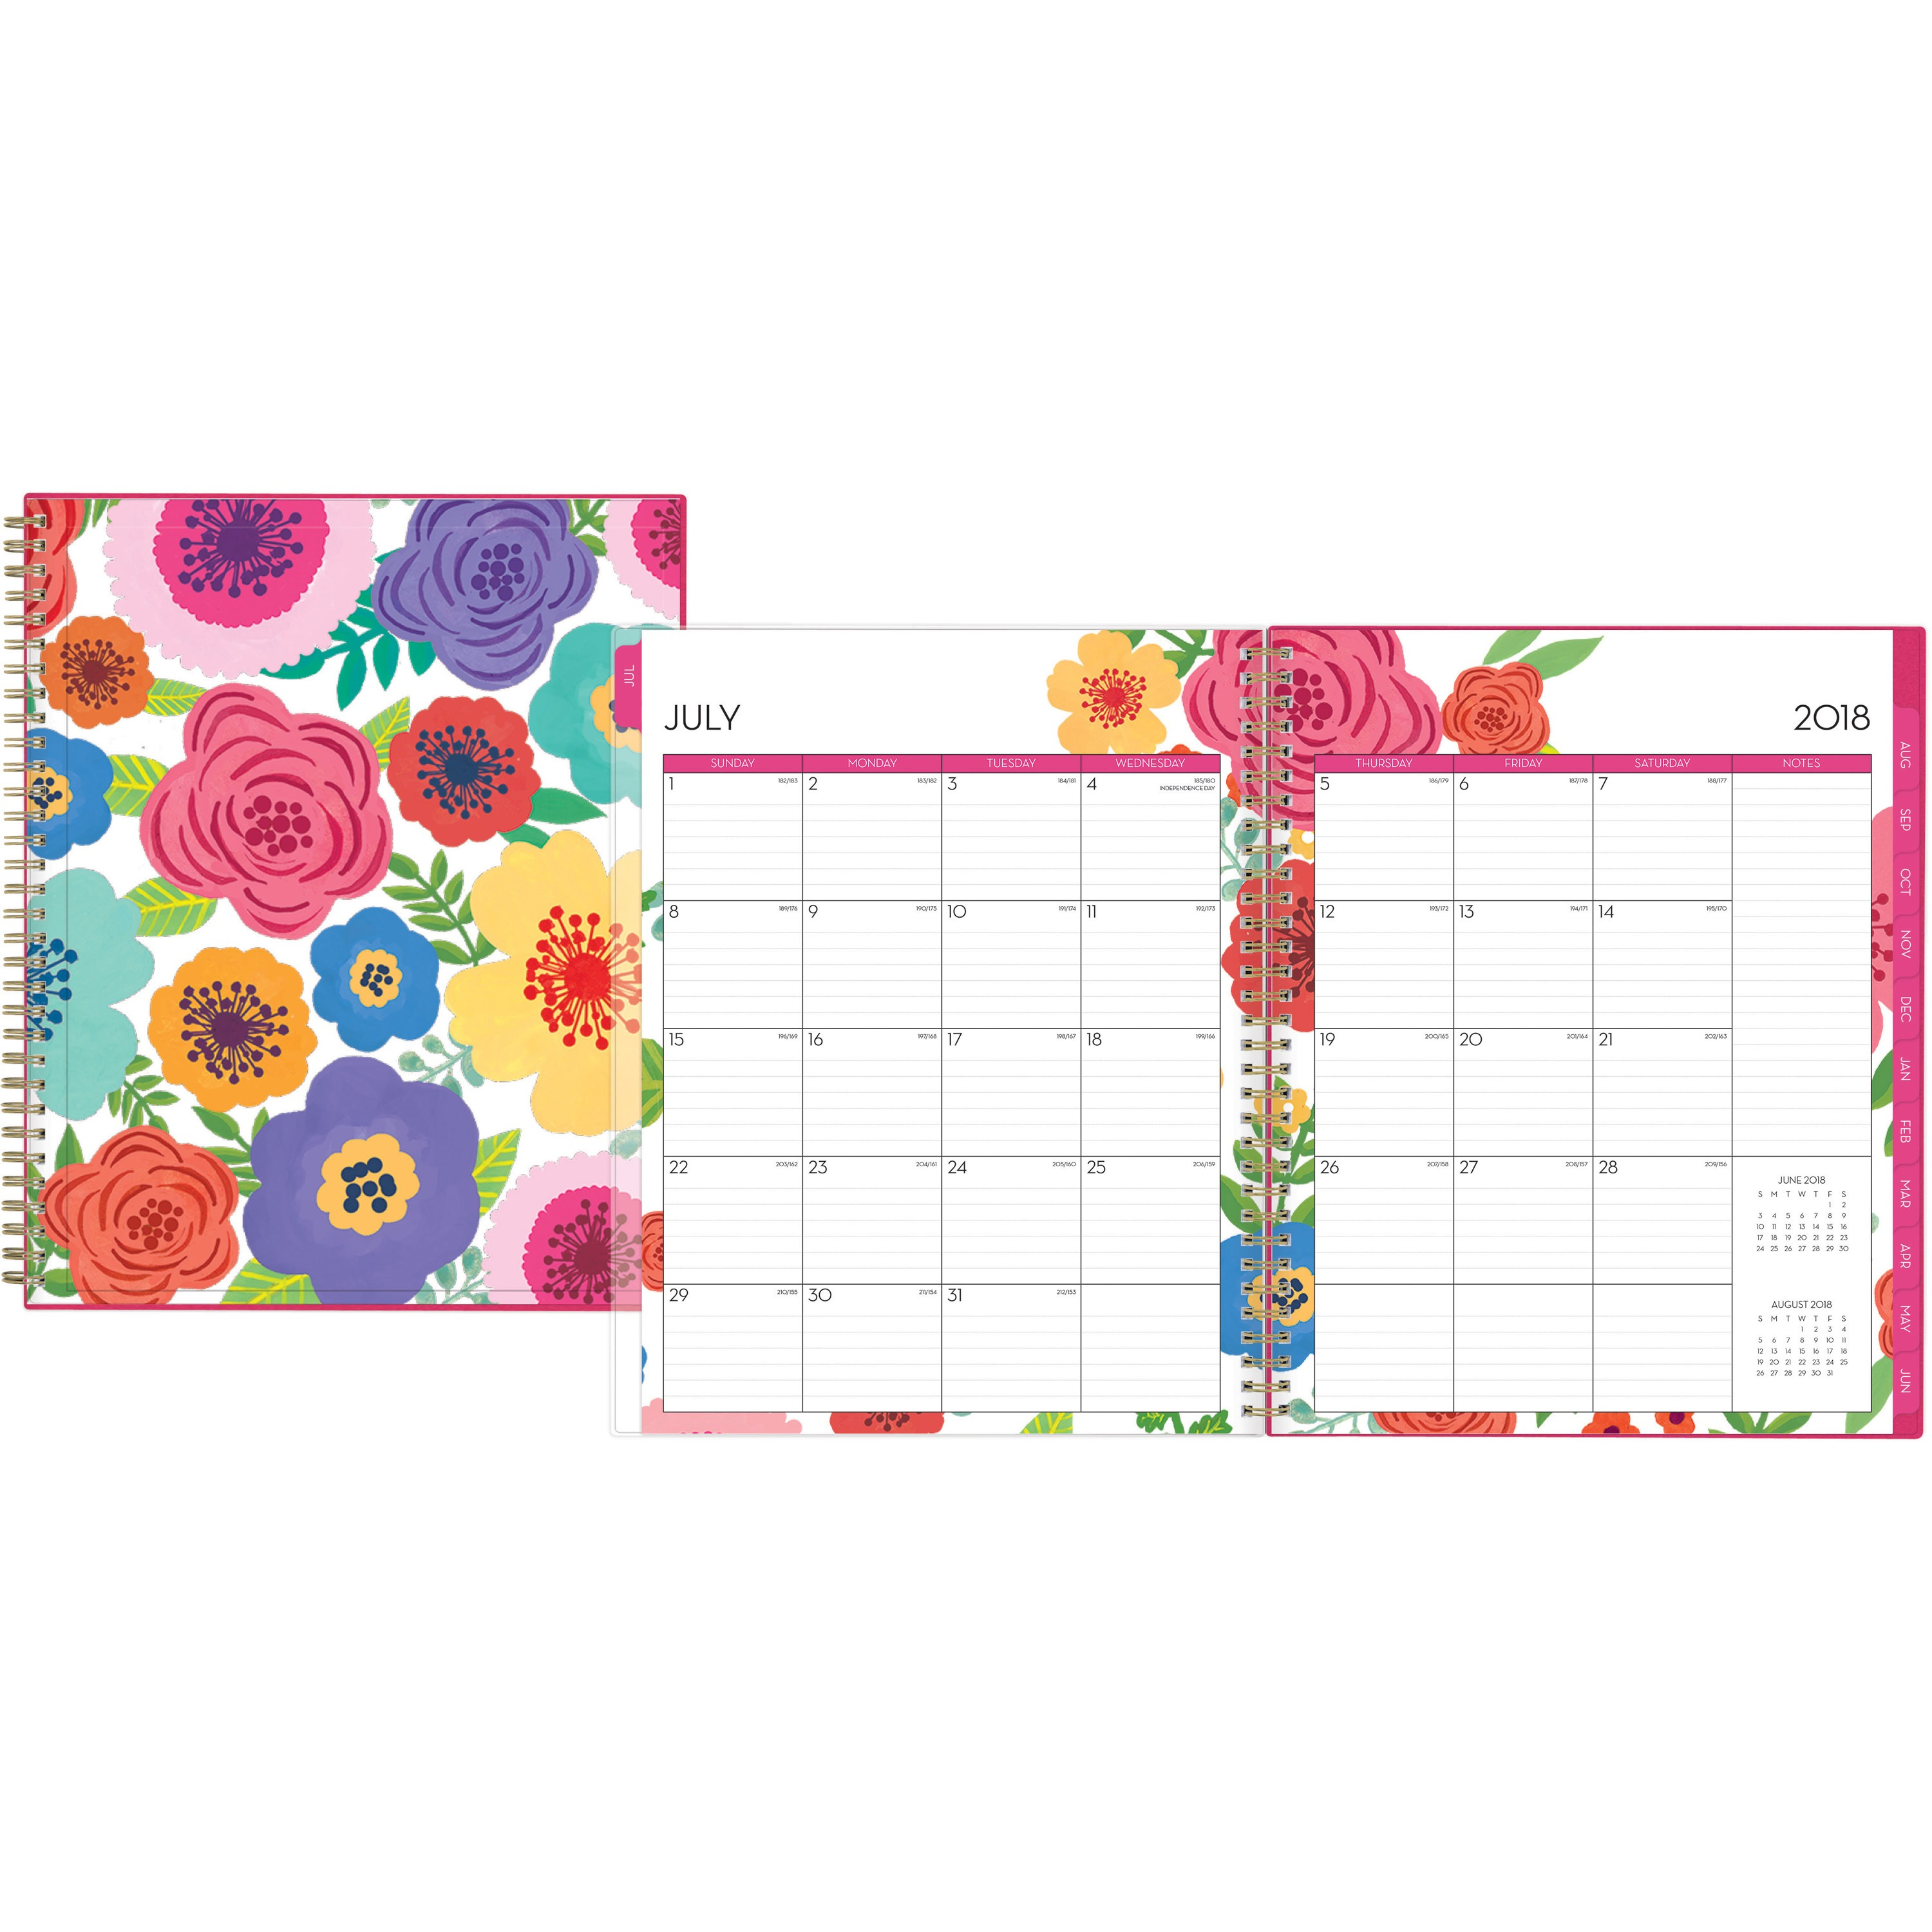 Blue Sky, BLS100149, Mahalo CYO 8.5 x 11 Weekly/Monthly Planner, 1 Each, Multicolor